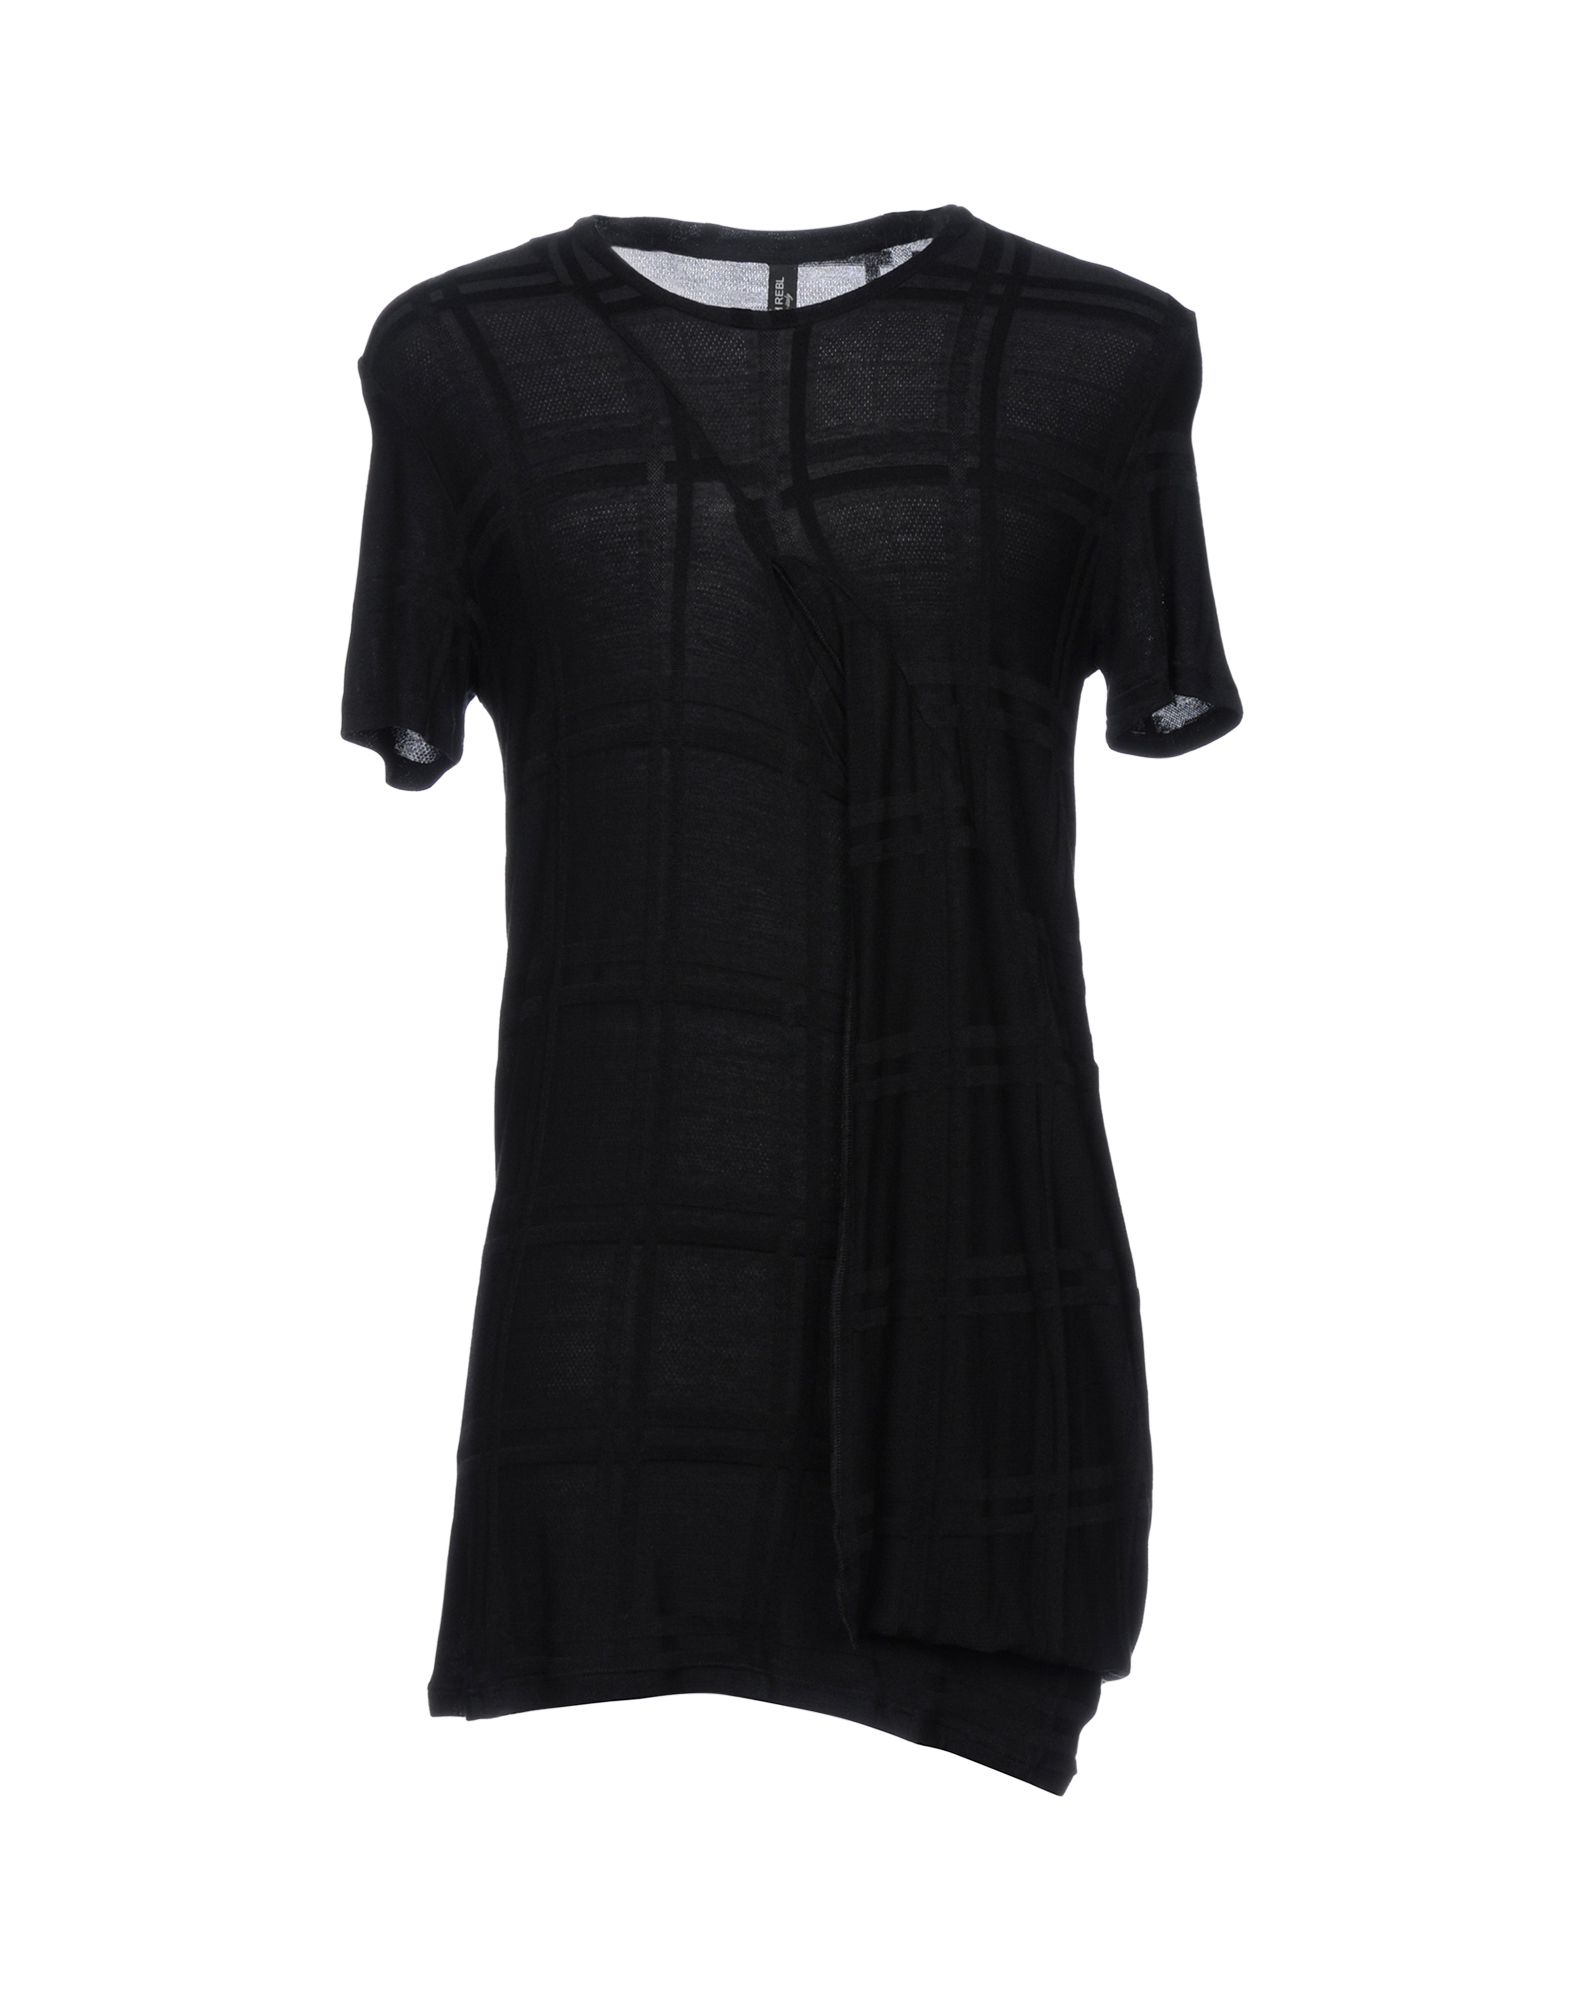 T-Shirt Tom Rebl Donna - Acquista online su